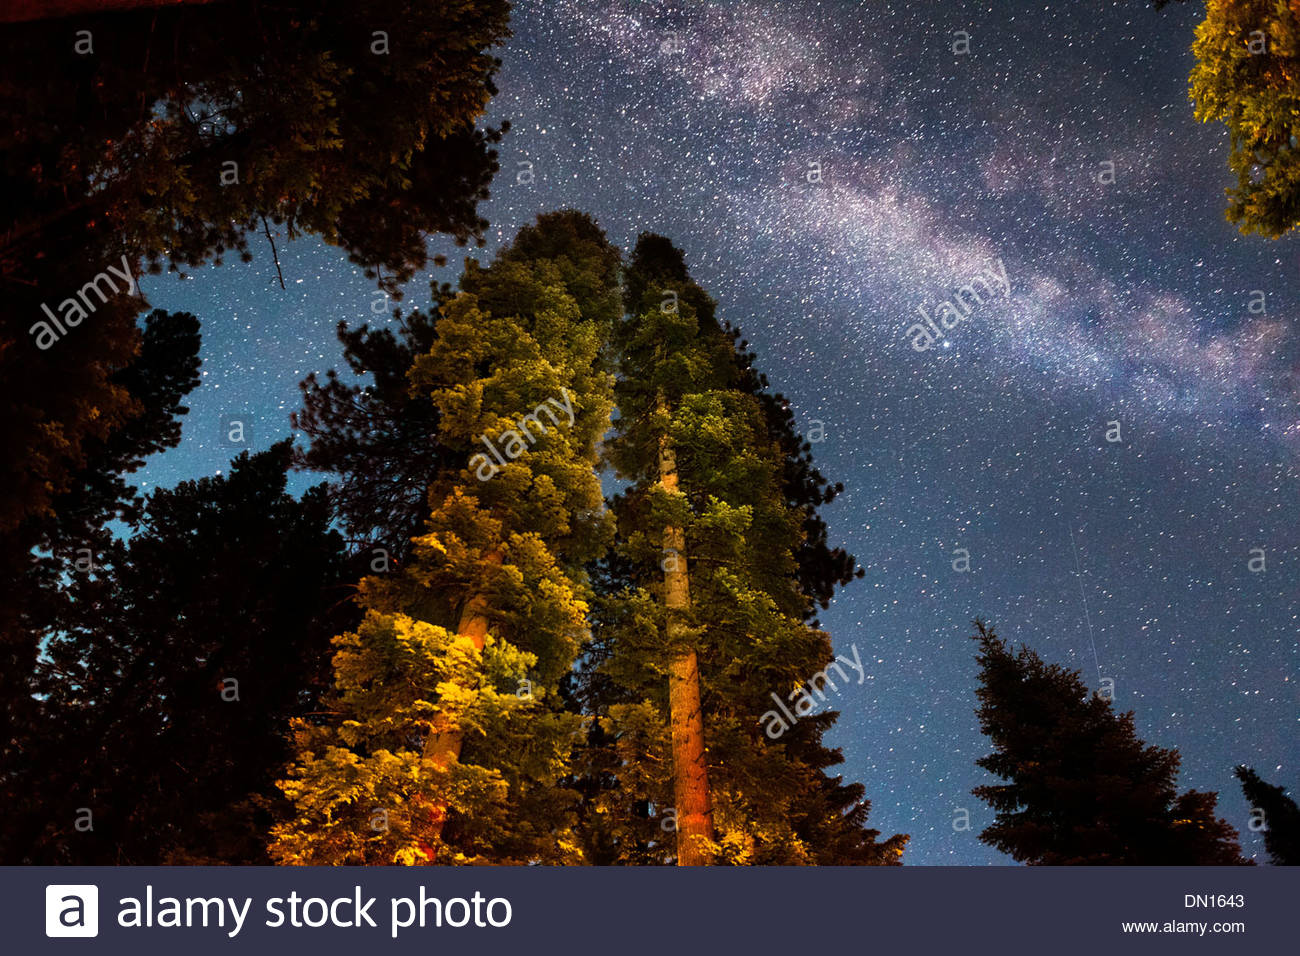 Milky Way Galaxy, Calaveras Big Trees State Park, California - Stock Image